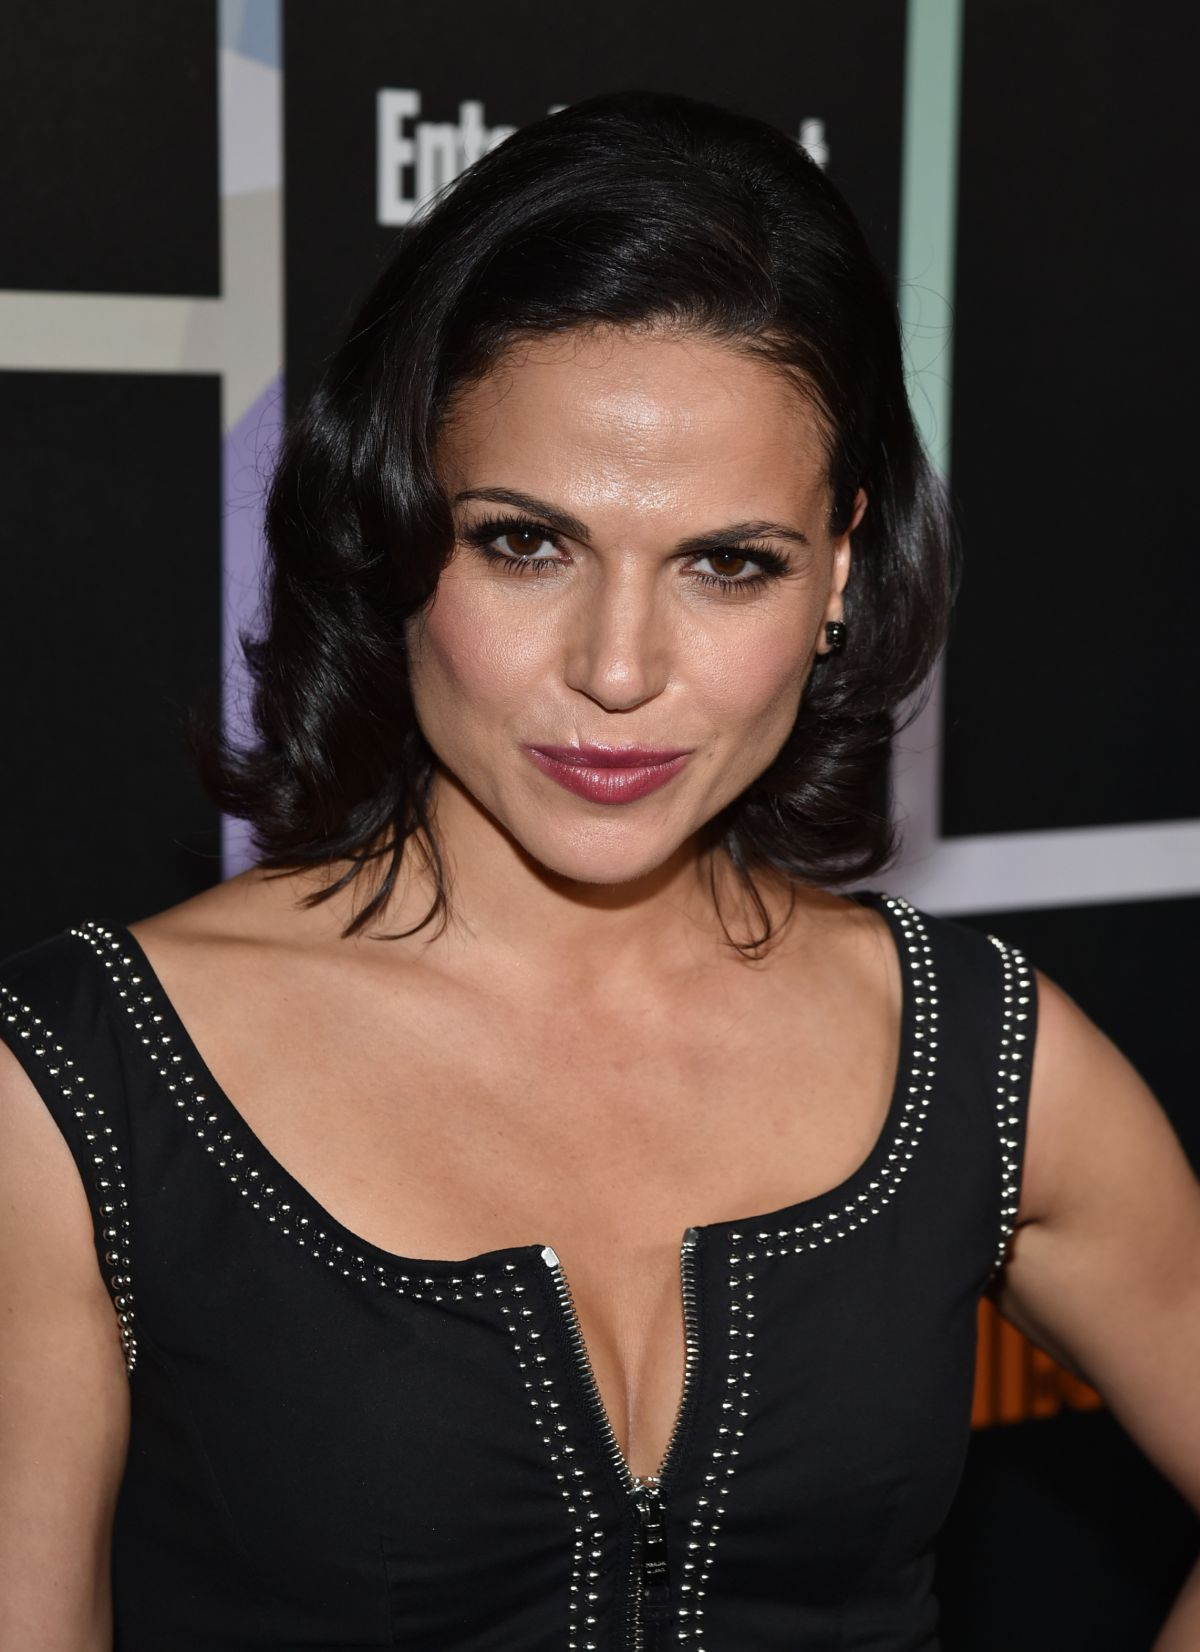 lana parrilla wikipedialana parrilla gif, lana parrilla photoshoot, lana parrilla wiki, lana parrilla 2017, lana parrilla wallpaper, lana parrilla lost, lana parrilla vk, lana parrilla france, lana parrilla brazil, lana parrilla tumblr gif, lana parrilla wikipedia, lana parrilla wedding, lana parrilla art, lana parrilla photos, lana parrilla latina, lana parrilla address, lana parrilla screencaps, lana parrilla profile, lana parrilla fansite, lana parrilla red carpet